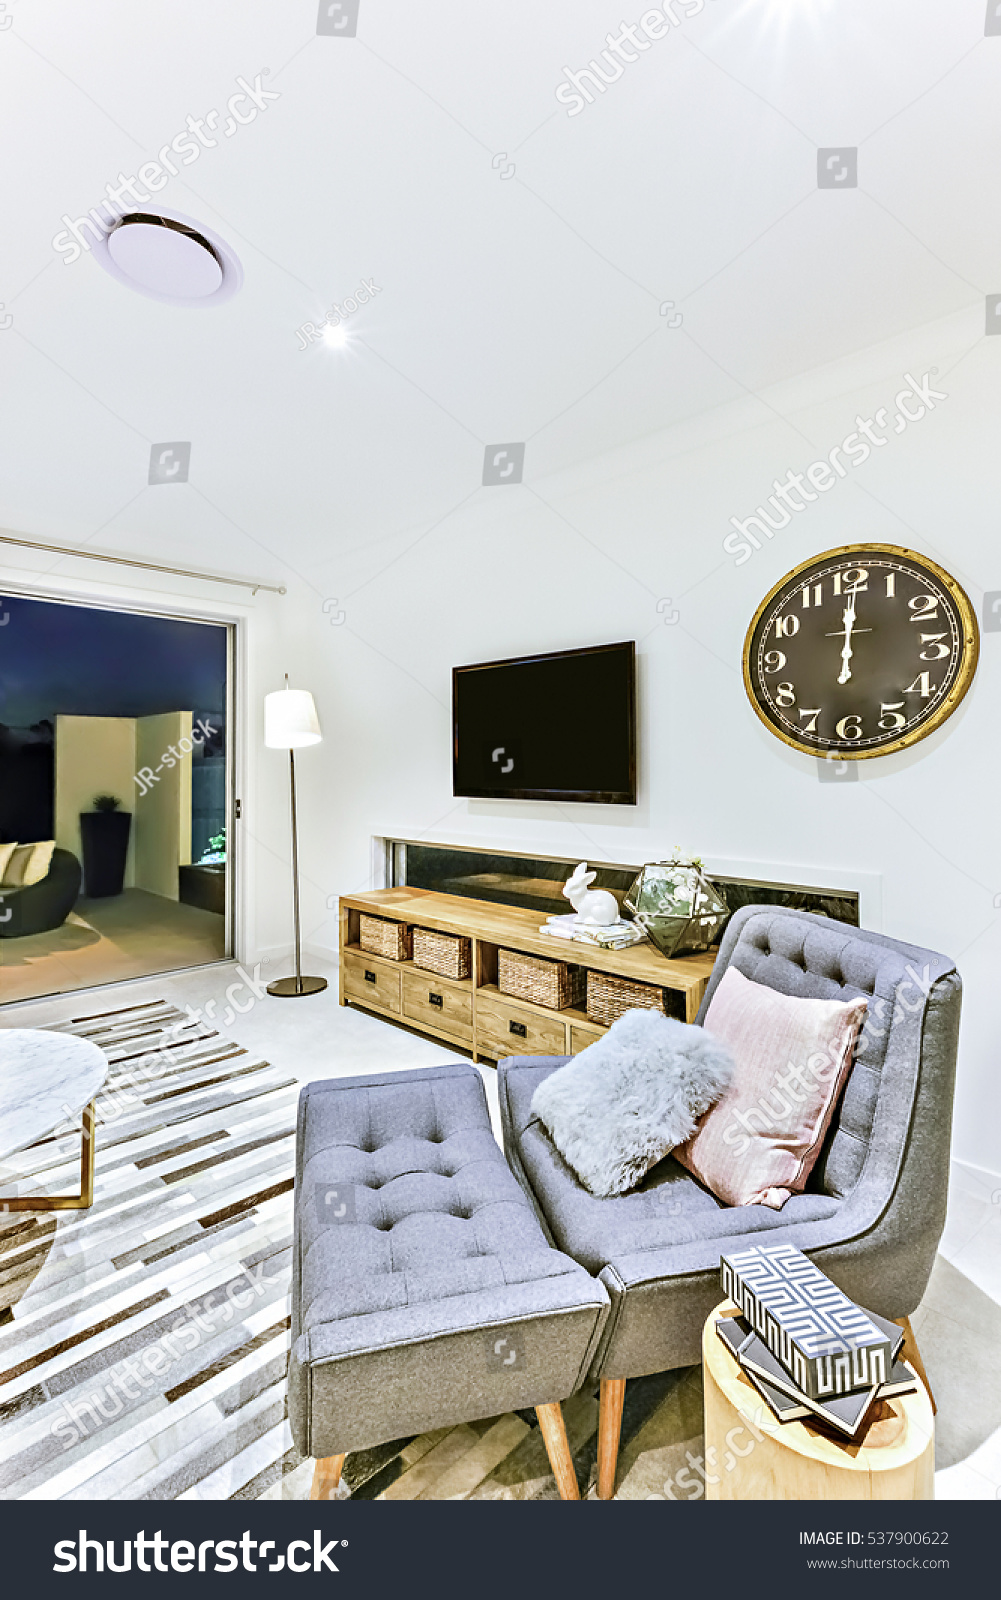 Simple Living Room Clock Television Near Stock Photo (Royalty Free ...